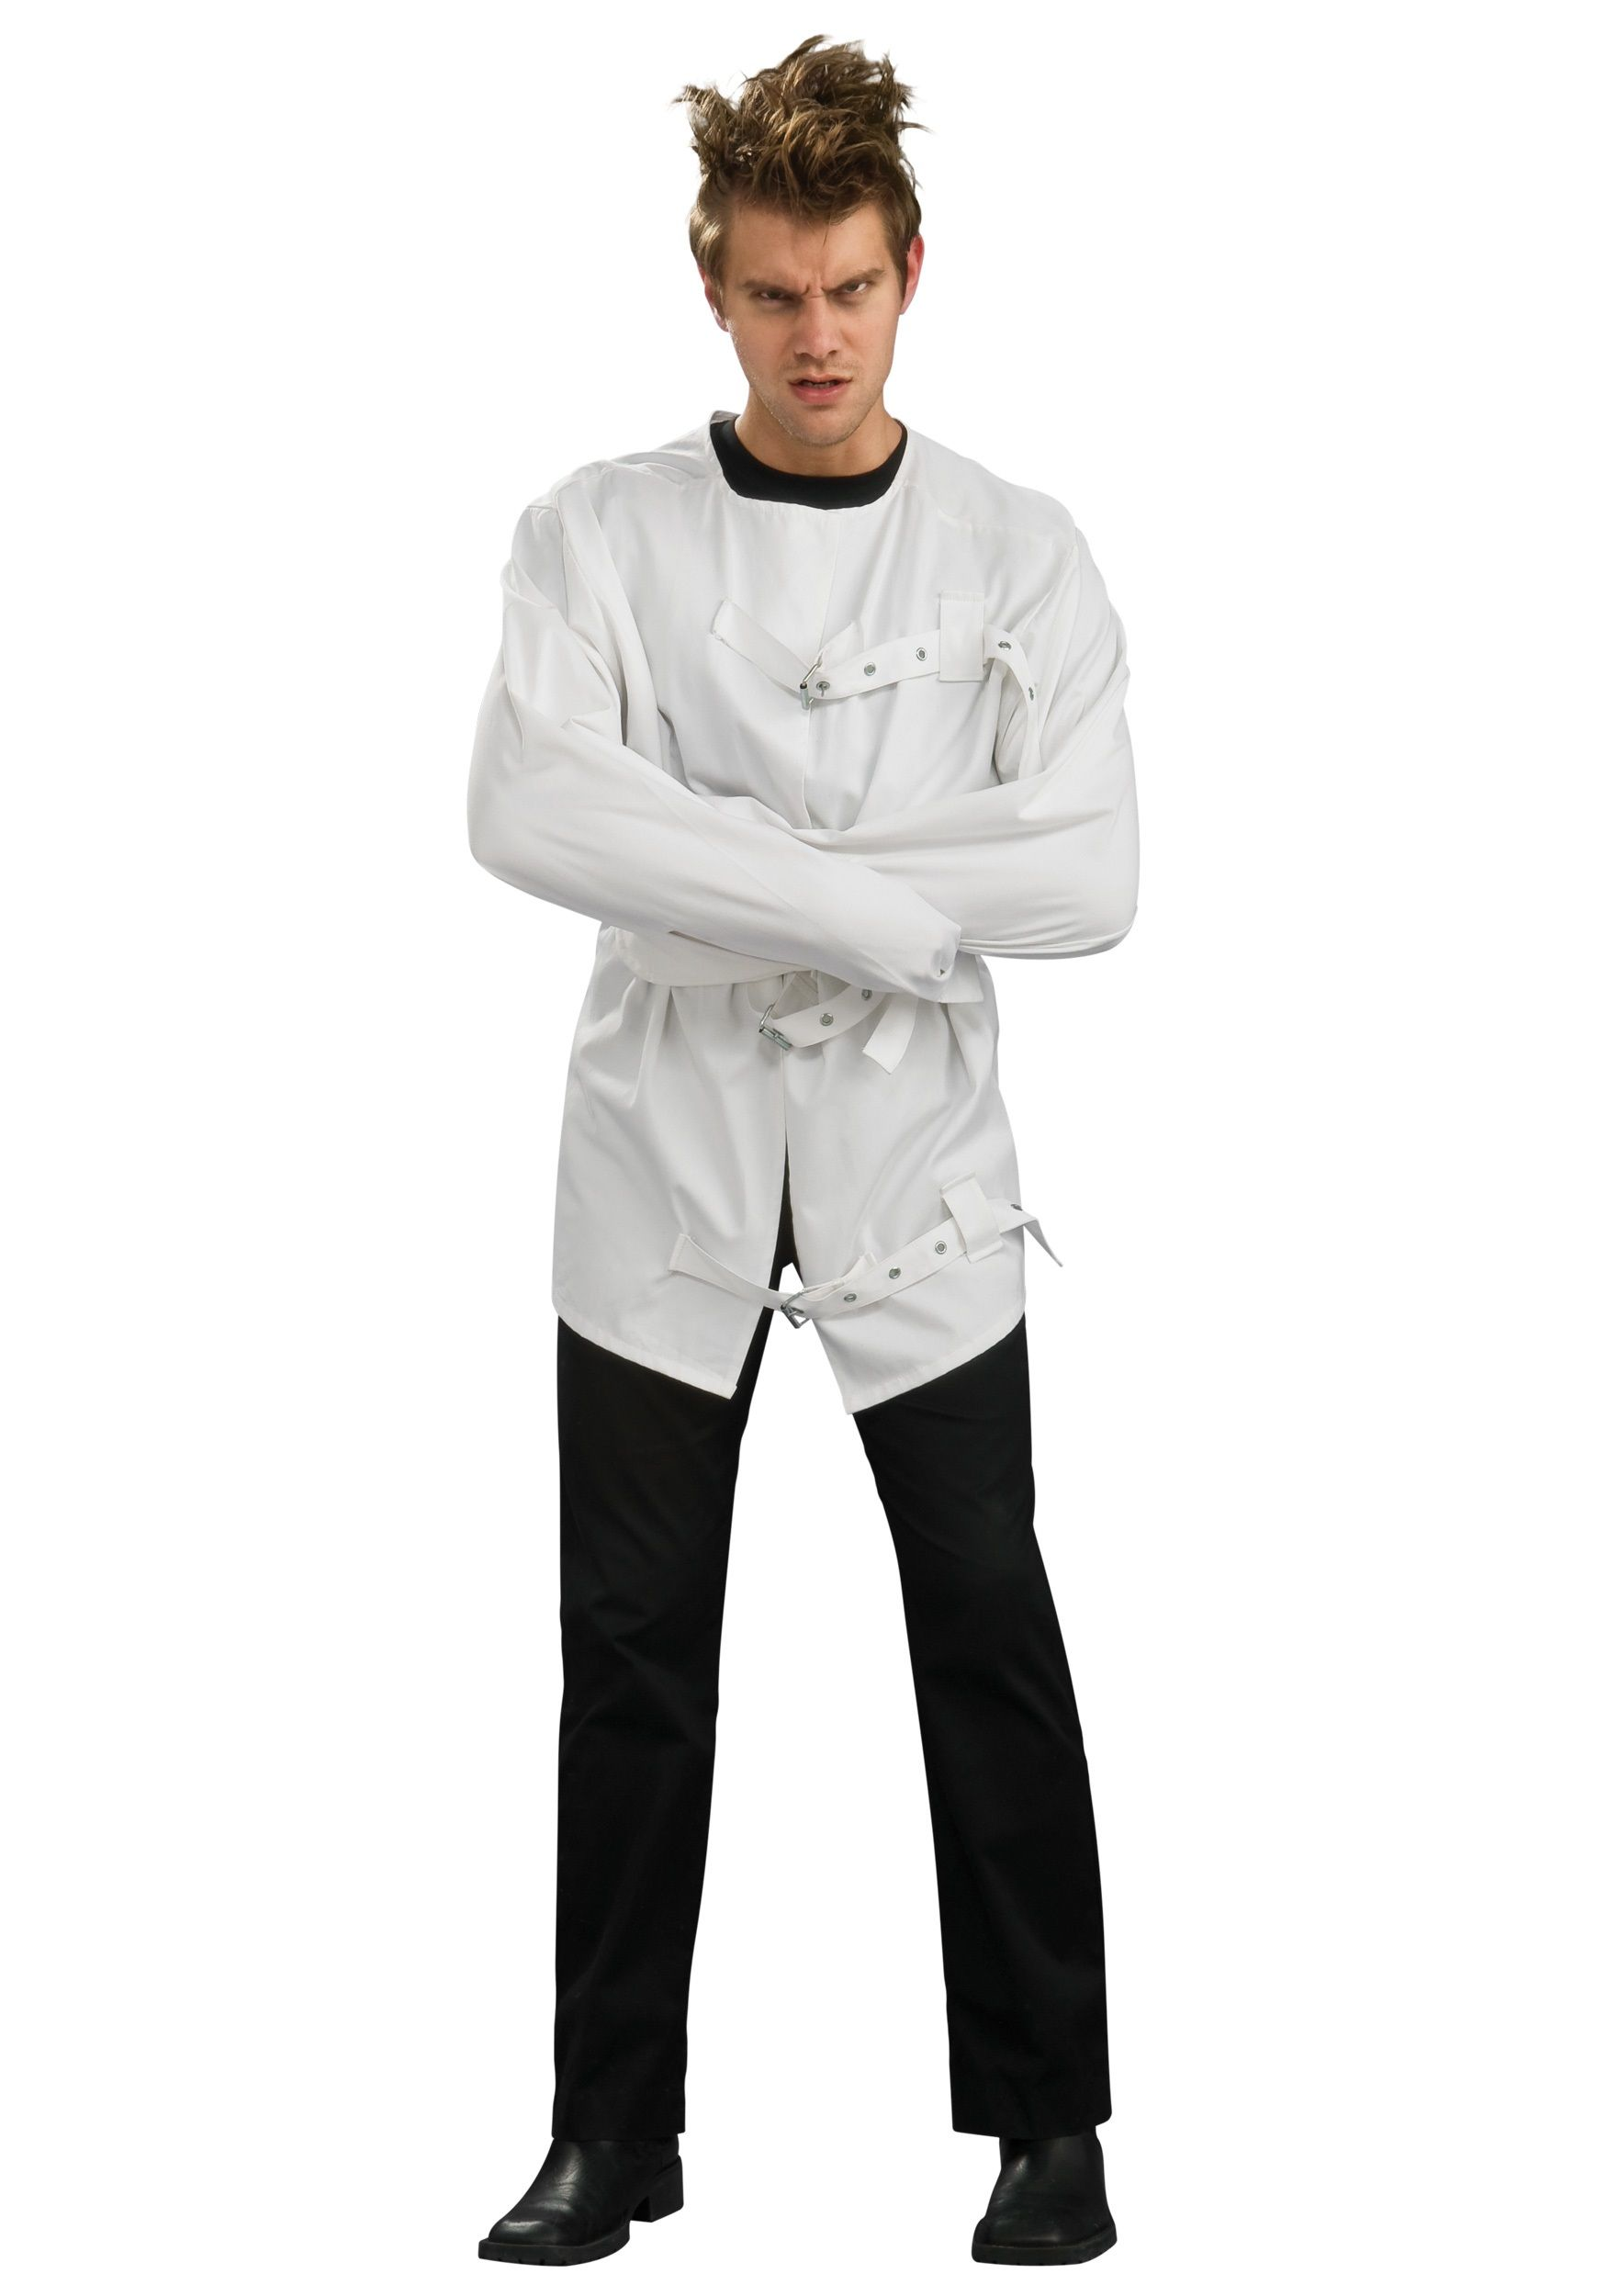 Straight Jacket Costume | Straight jacket costume, Costumes and ...